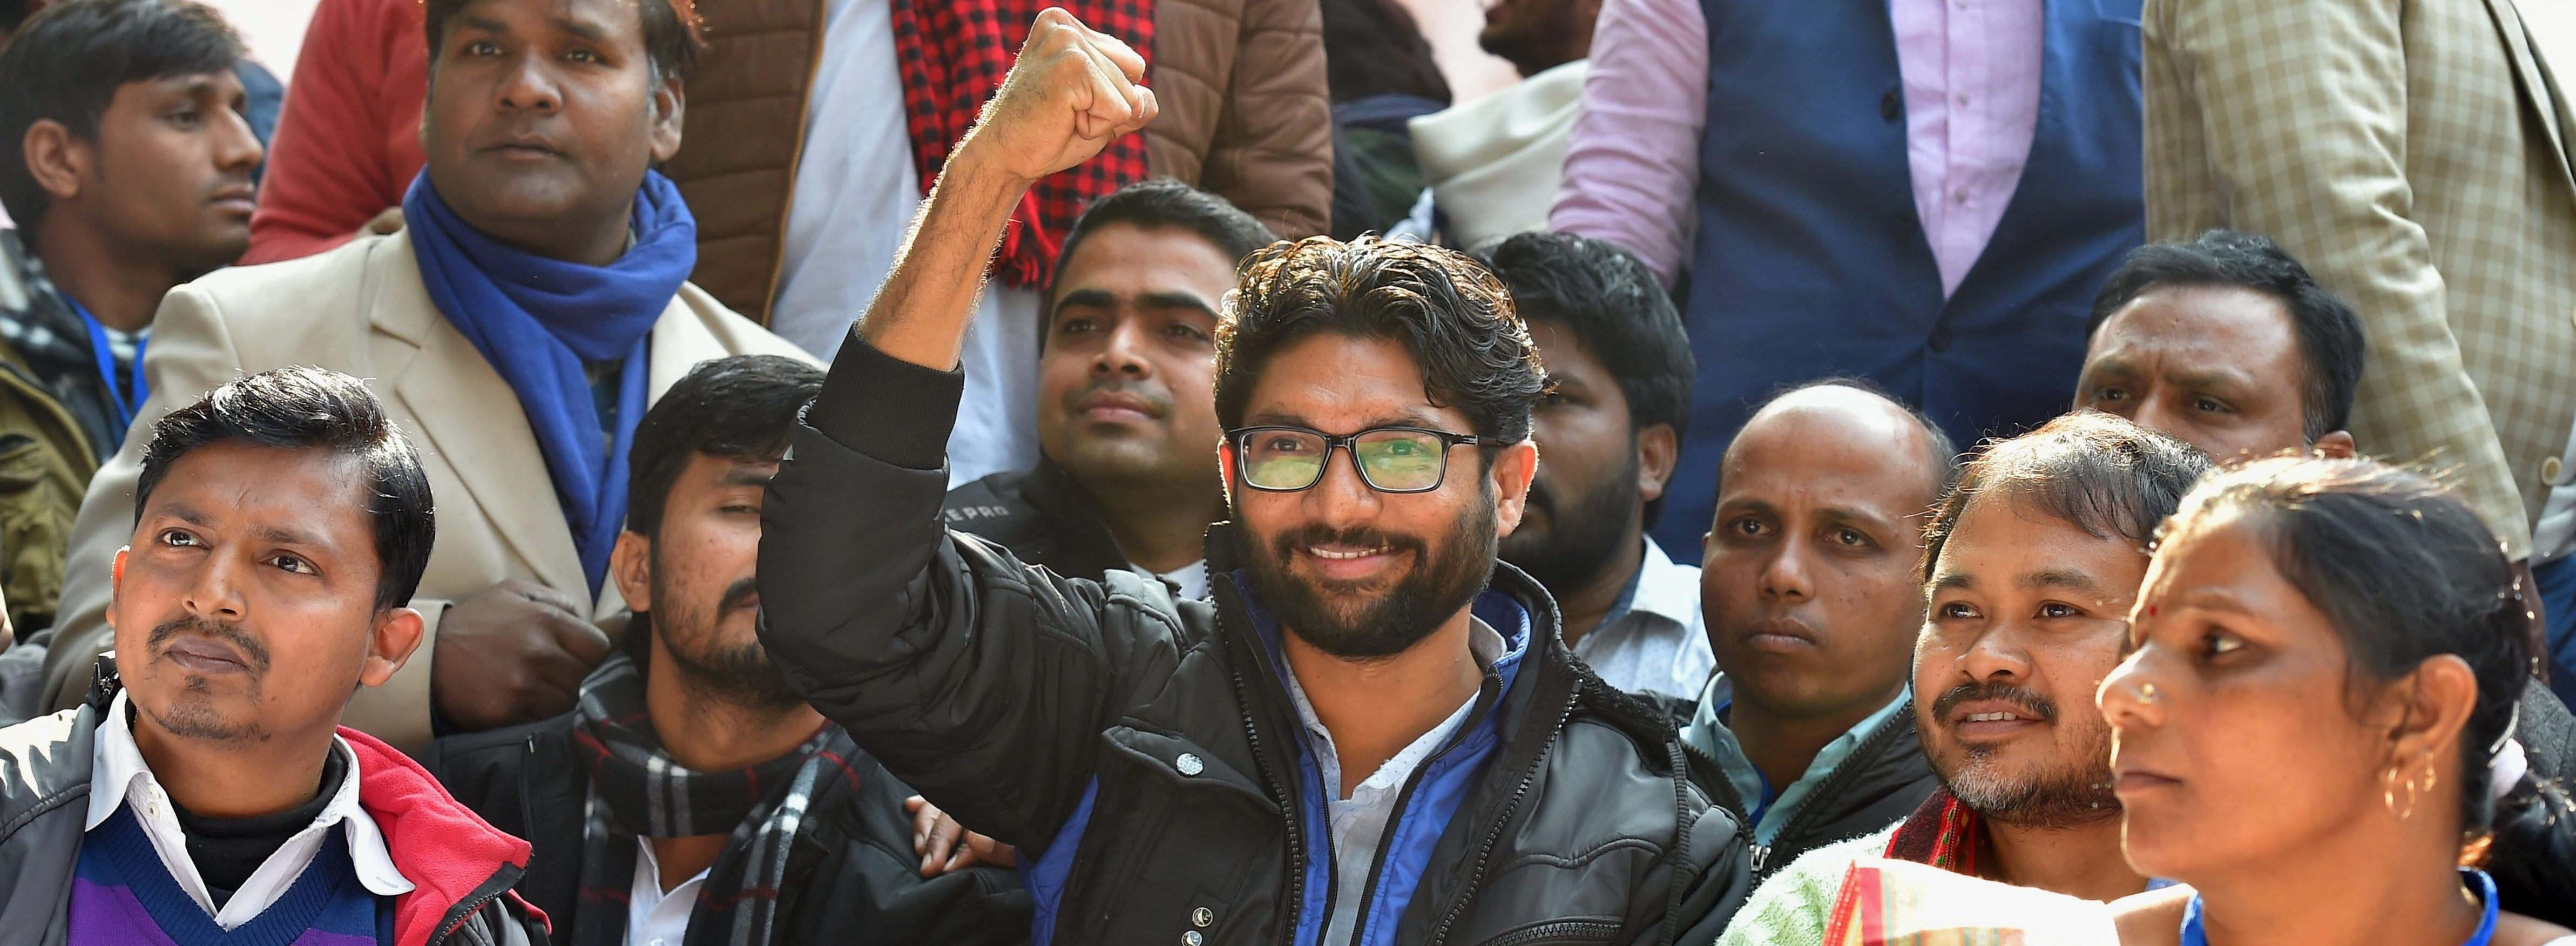 Delhi's 'Yuva Hunkar' Rally Only the Beginning, Say Youth Leaders Protesting Modi Govt Policies